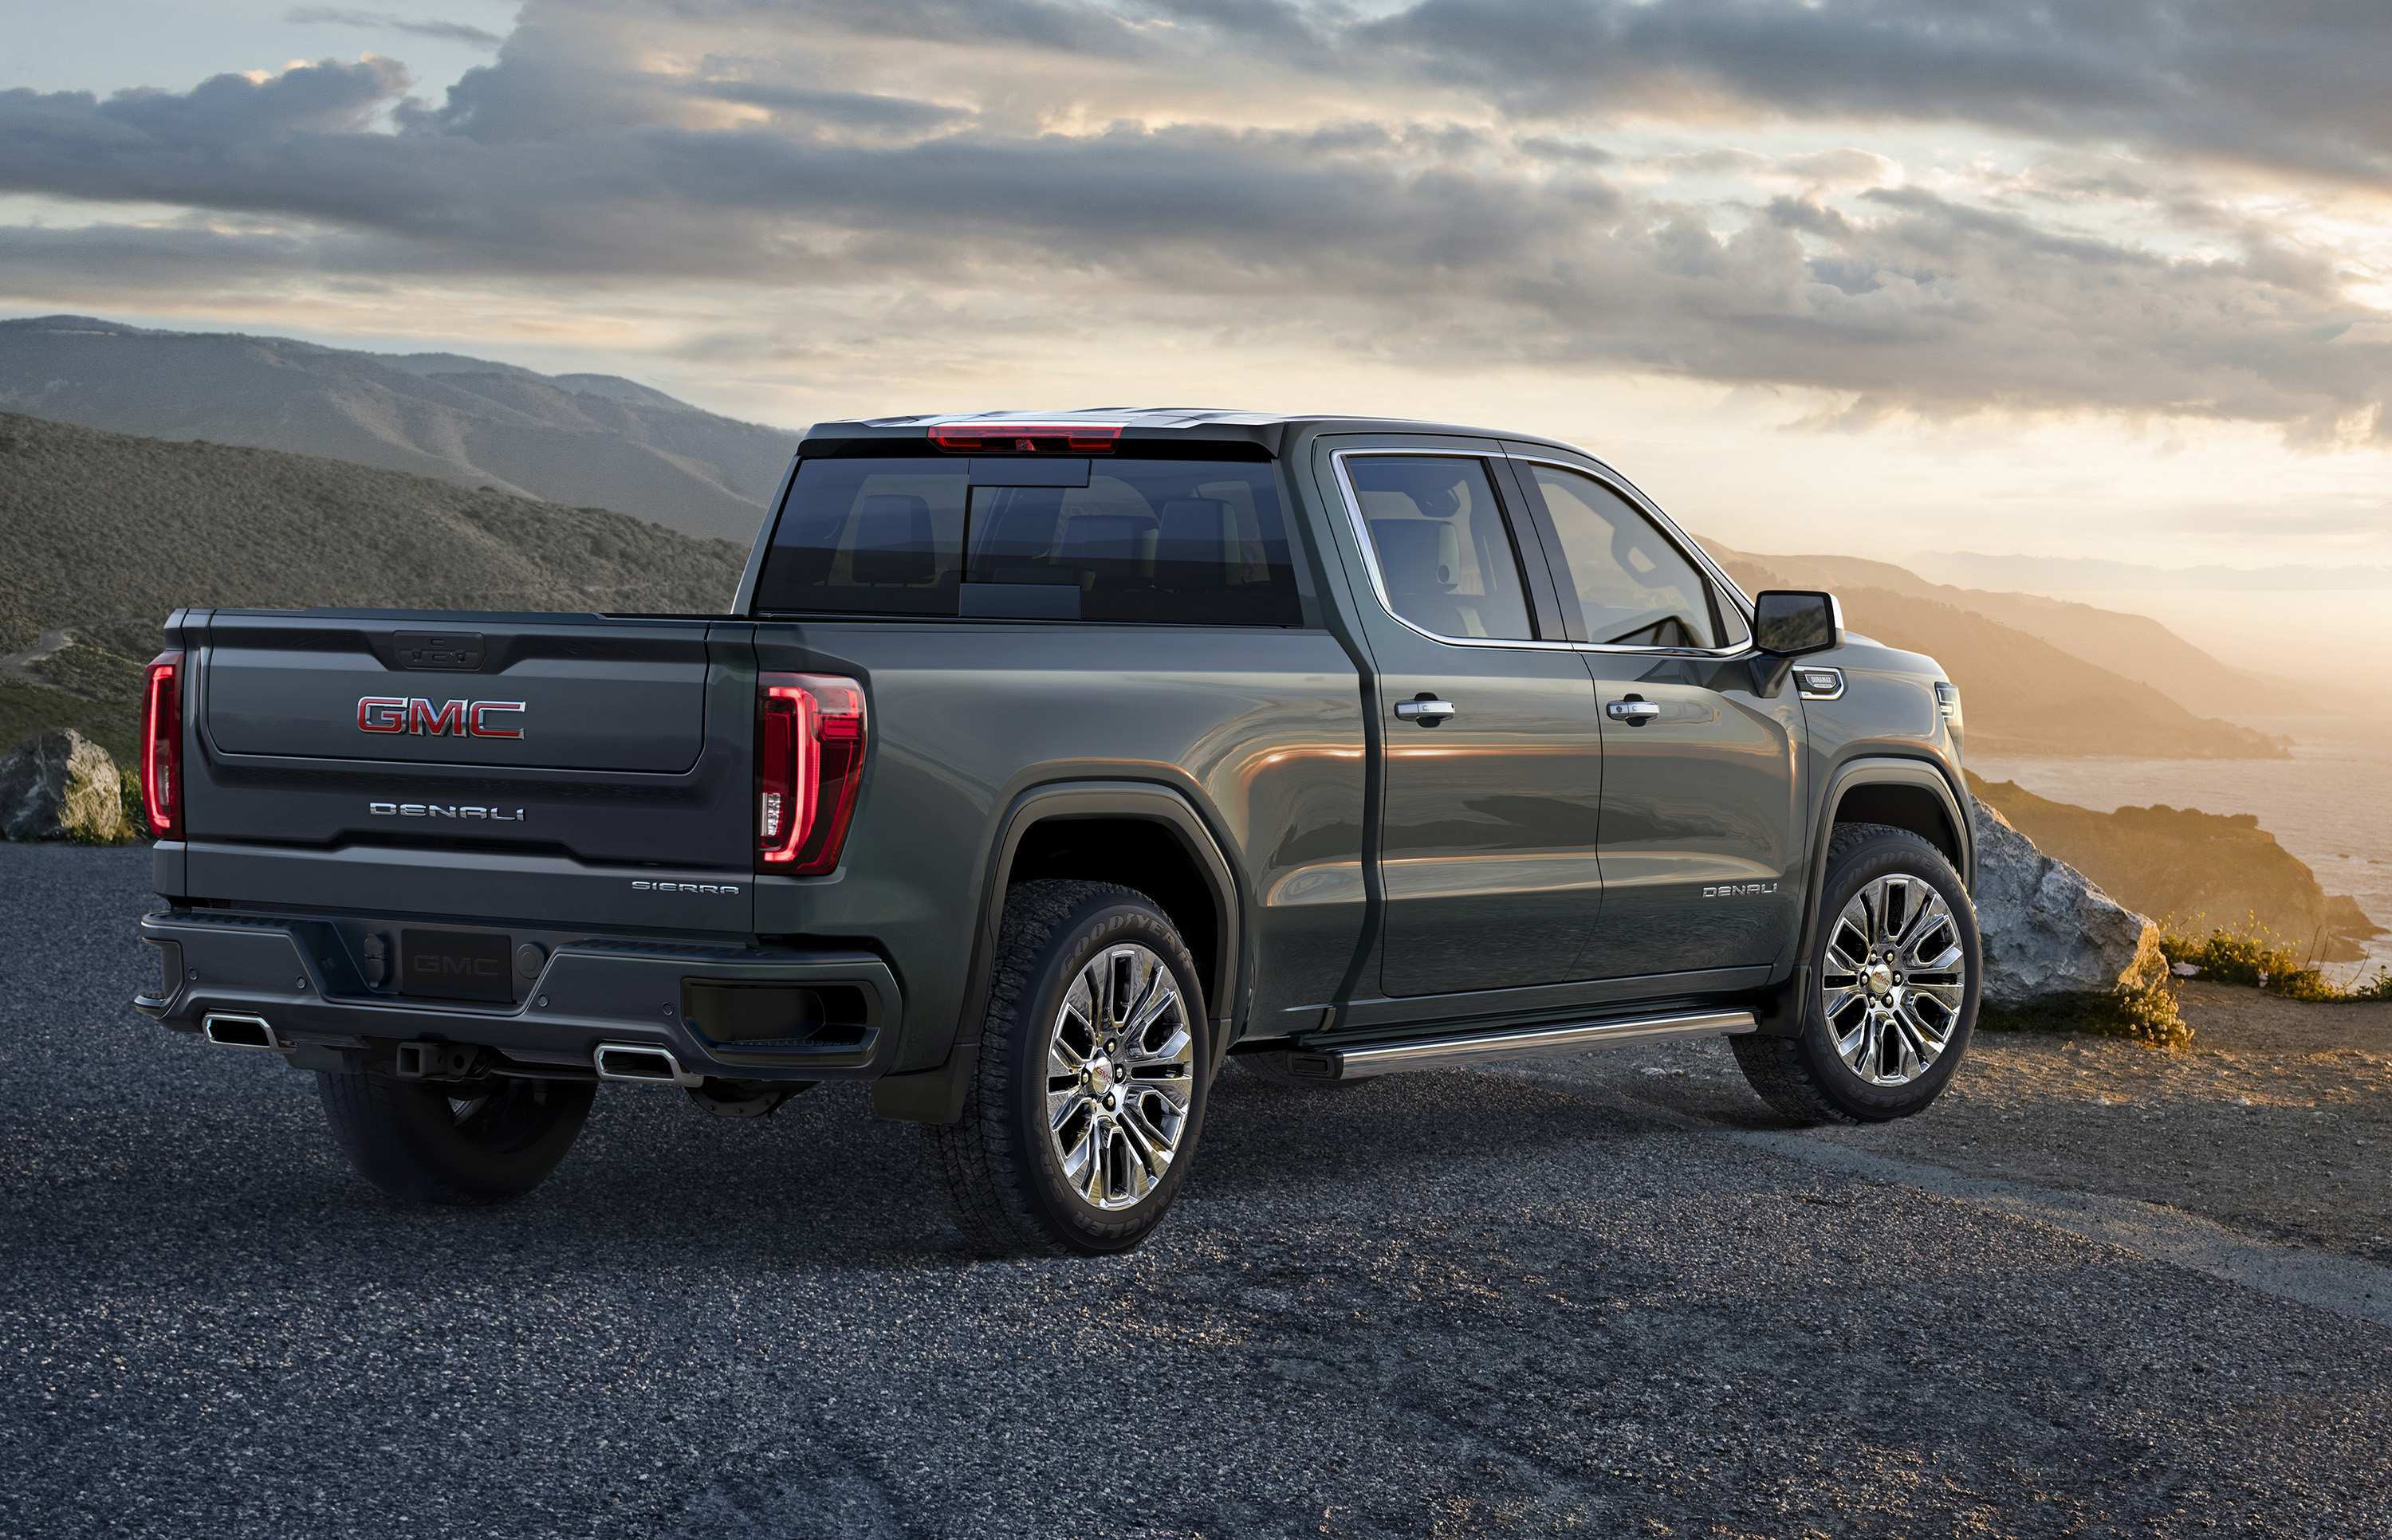 24 Gallery of 2019 Gmc New Tailgate Rumors by 2019 Gmc New Tailgate